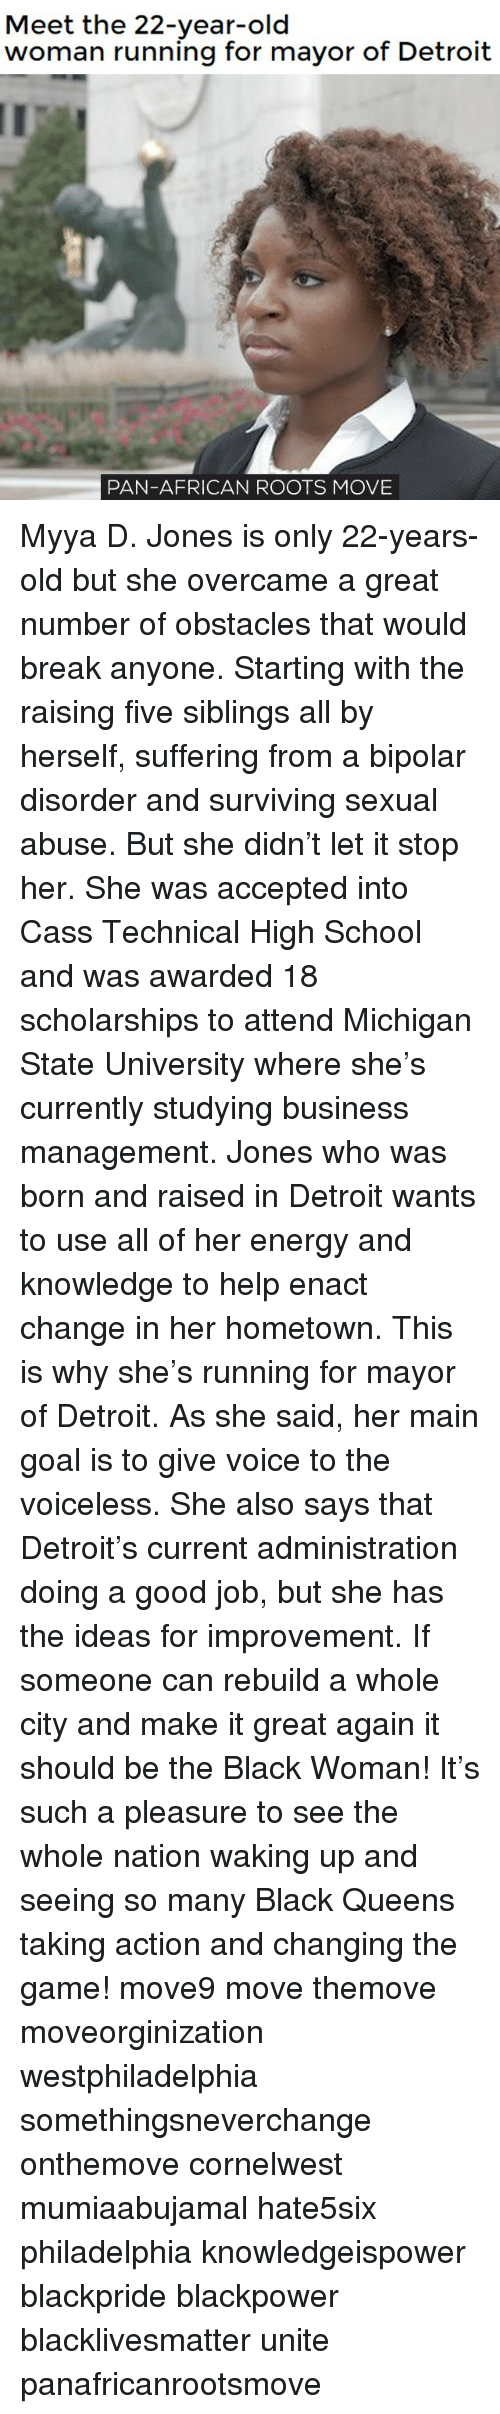 michigan state: Meet the 22-year-old  woman running for mayor of Detroit  PAN-AFRICAN ROOTS MOVE Myya D. Jones is only 22-years-old but she overcame a great number of obstacles that would break anyone. Starting with the raising five siblings all by herself, suffering from a bipolar disorder and surviving sexual abuse. But she didn't let it stop her. She was accepted into Cass Technical High School and was awarded 18 scholarships to attend Michigan State University where she's currently studying business management. Jones who was born and raised in Detroit wants to use all of her energy and knowledge to help enact change in her hometown. This is why she's running for mayor of Detroit. As she said, her main goal is to give voice to the voiceless. She also says that Detroit's current administration doing a good job, but she has the ideas for improvement. If someone can rebuild a whole city and make it great again it should be the Black Woman! It's such a pleasure to see the whole nation waking up and seeing so many Black Queens taking action and changing the game! move9 move themove moveorginization westphiladelphia somethingsneverchange onthemove cornelwest mumiaabujamal hate5six philadelphia knowledgeispower blackpride blackpower blacklivesmatter unite panafricanrootsmove